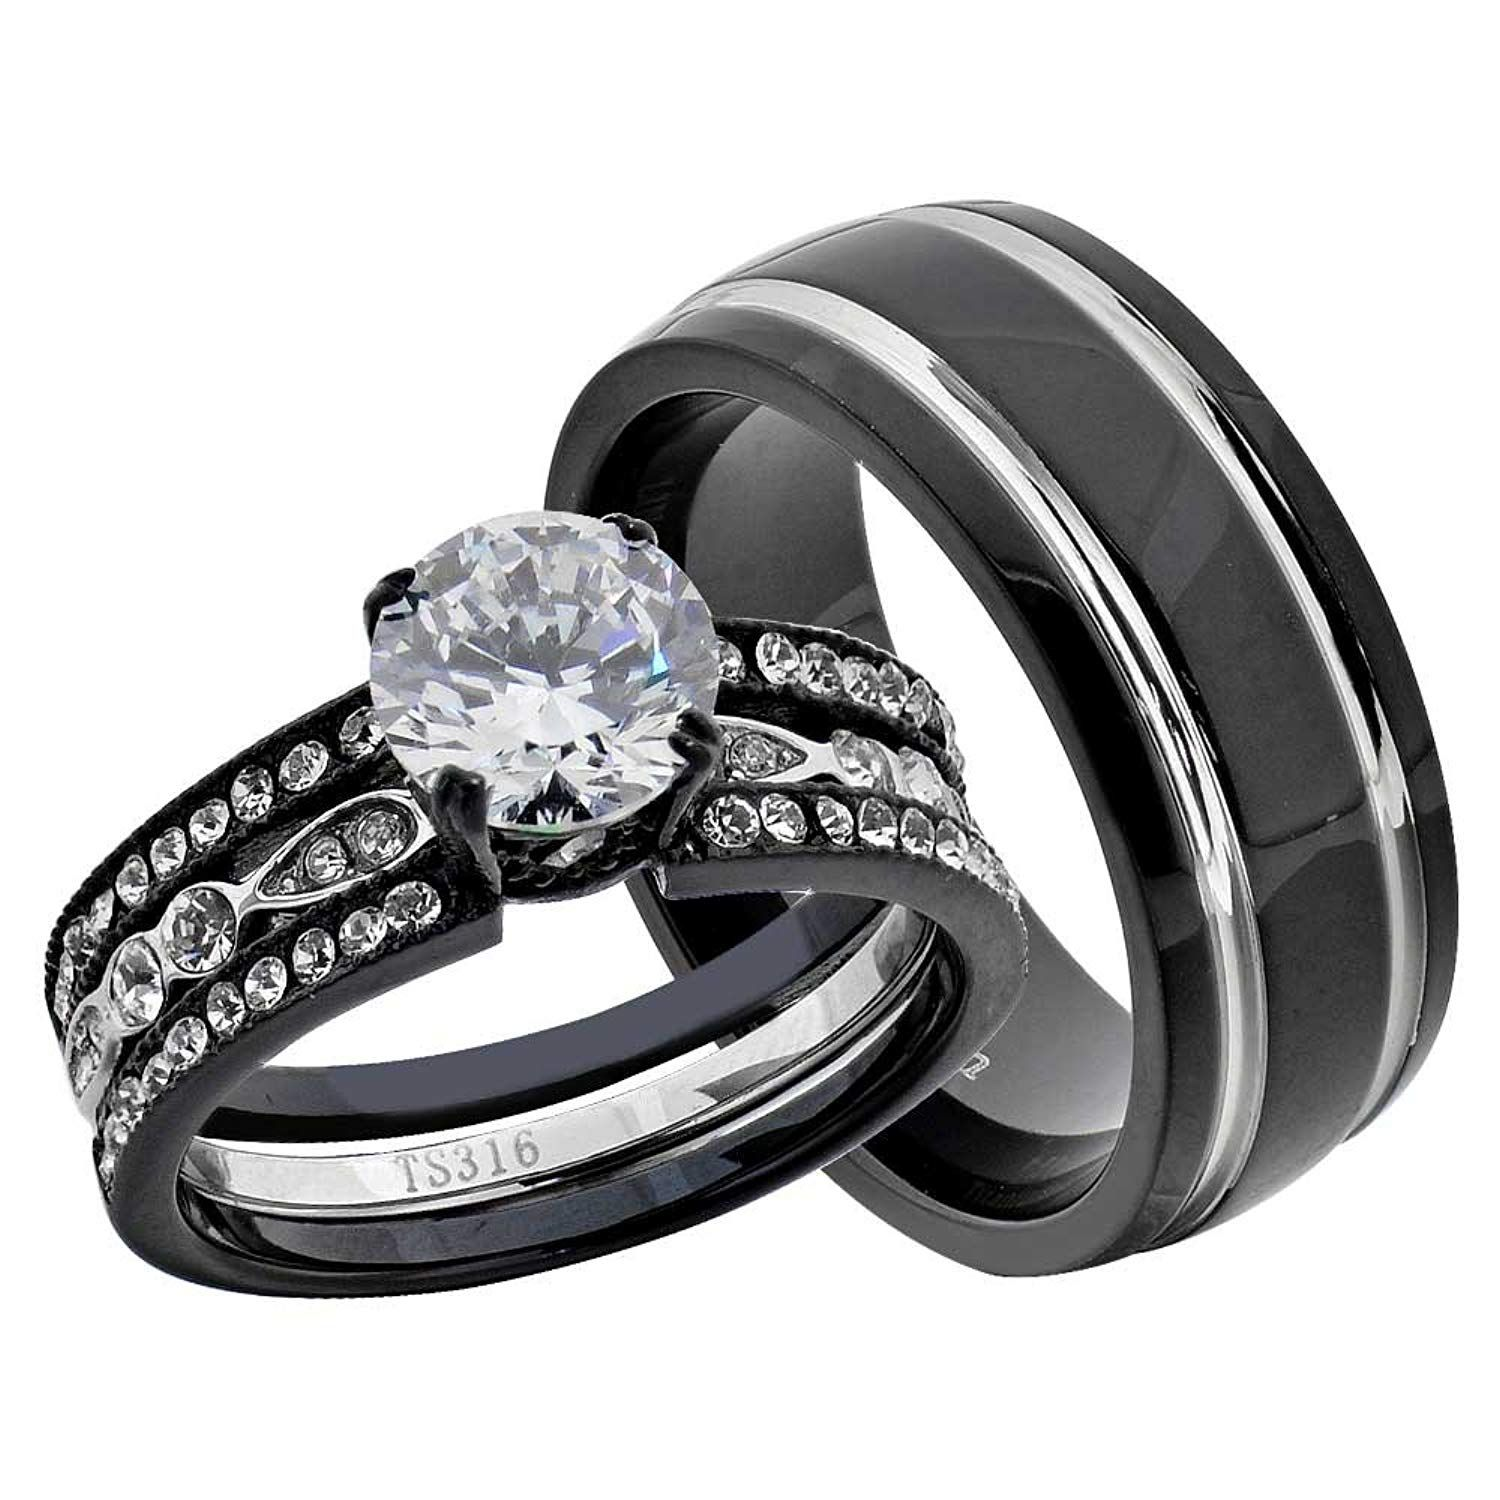 FlameReflection Stainless Steel Black Round Cubic Zirconia